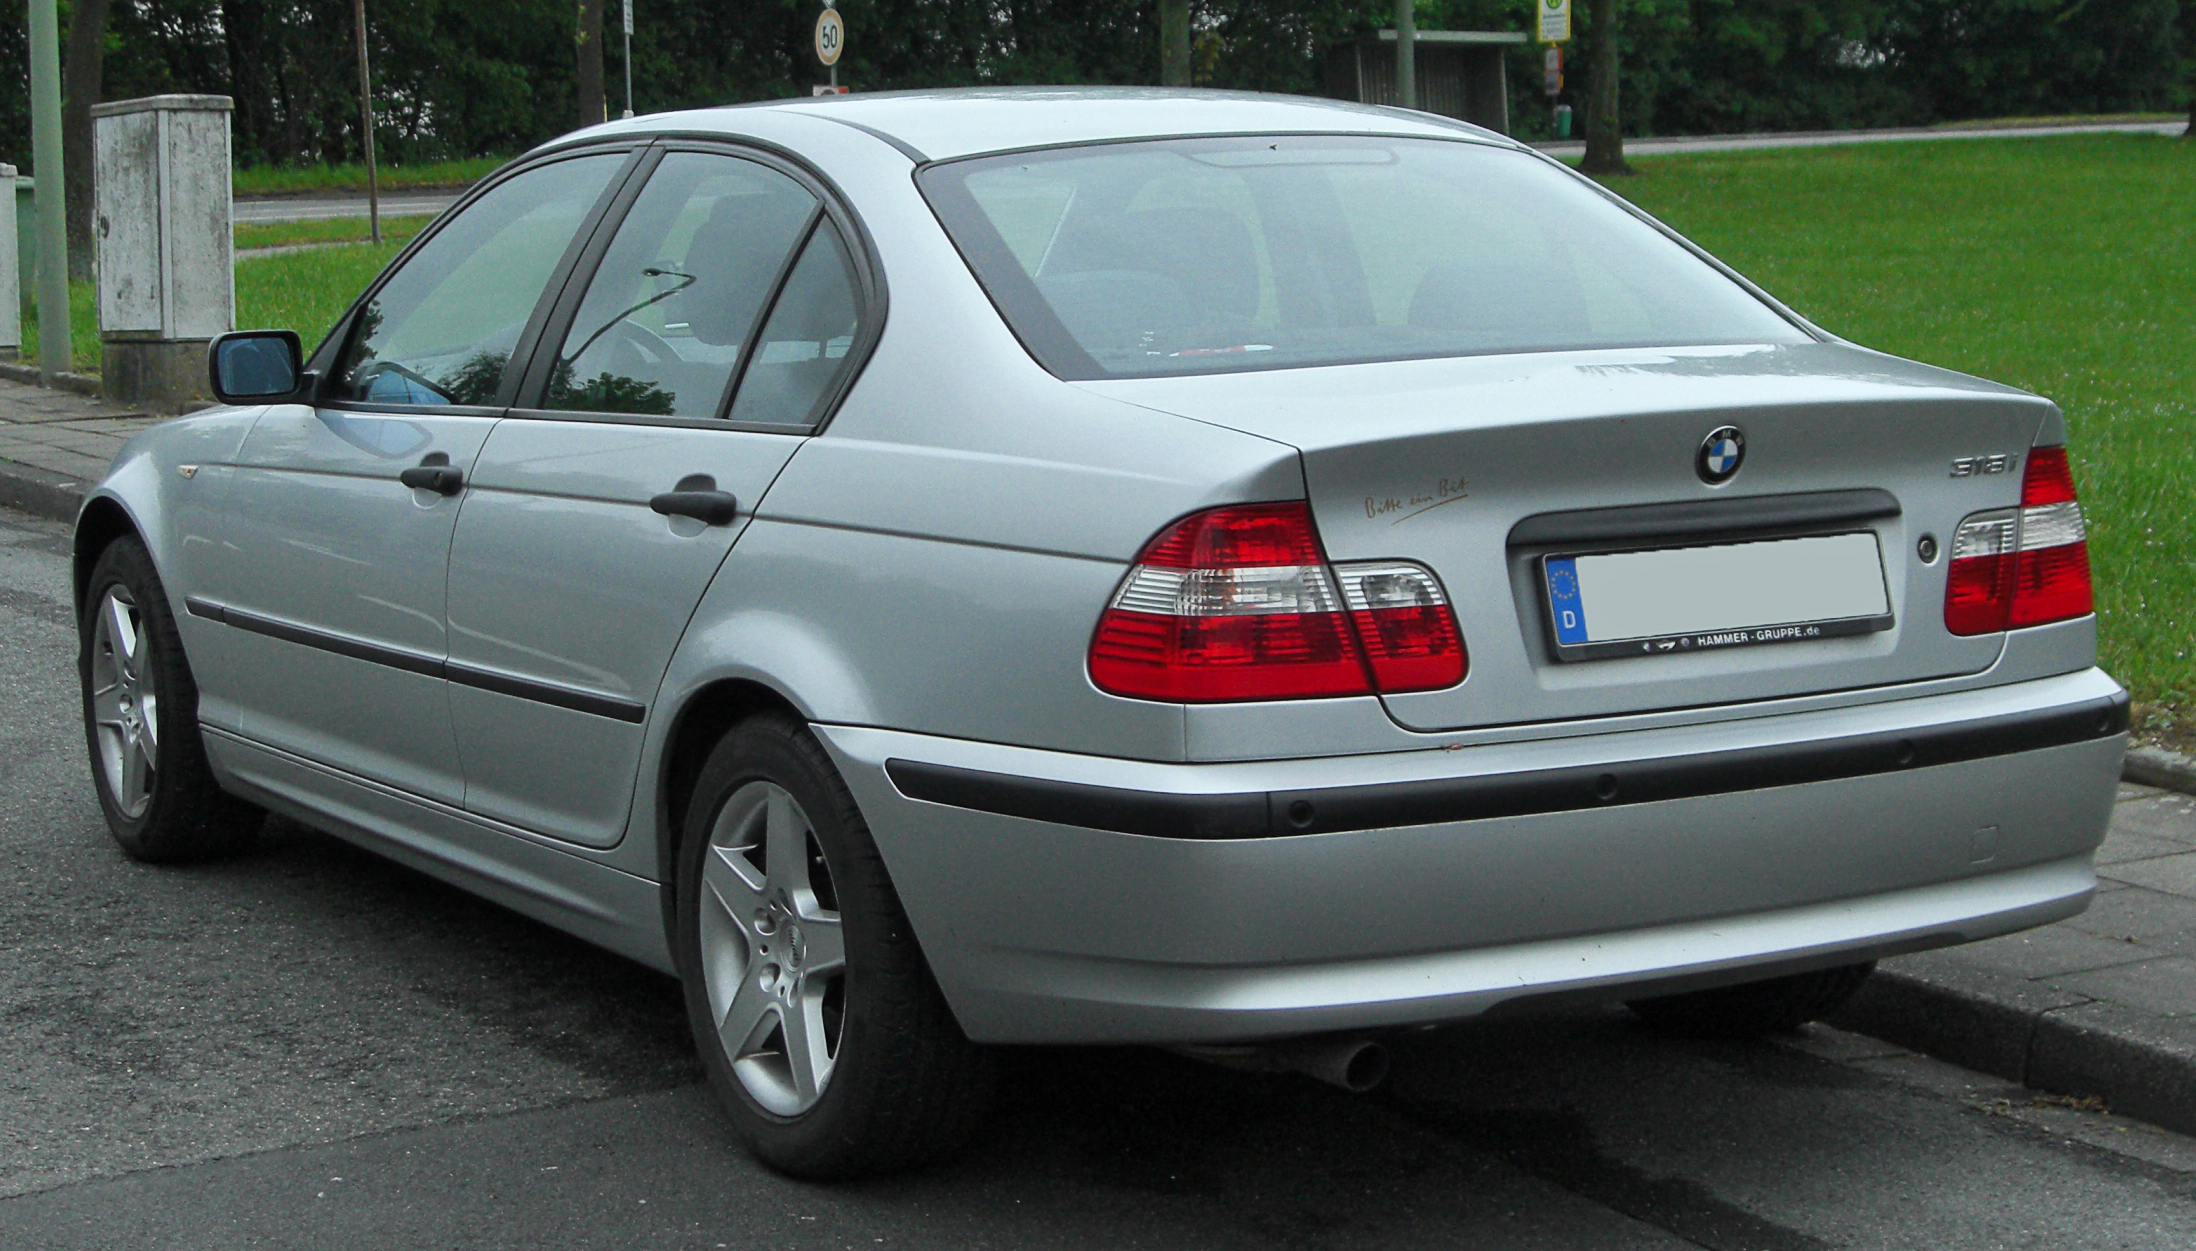 File:BMW 318i (E46) Facelift rear 20100507.jpg